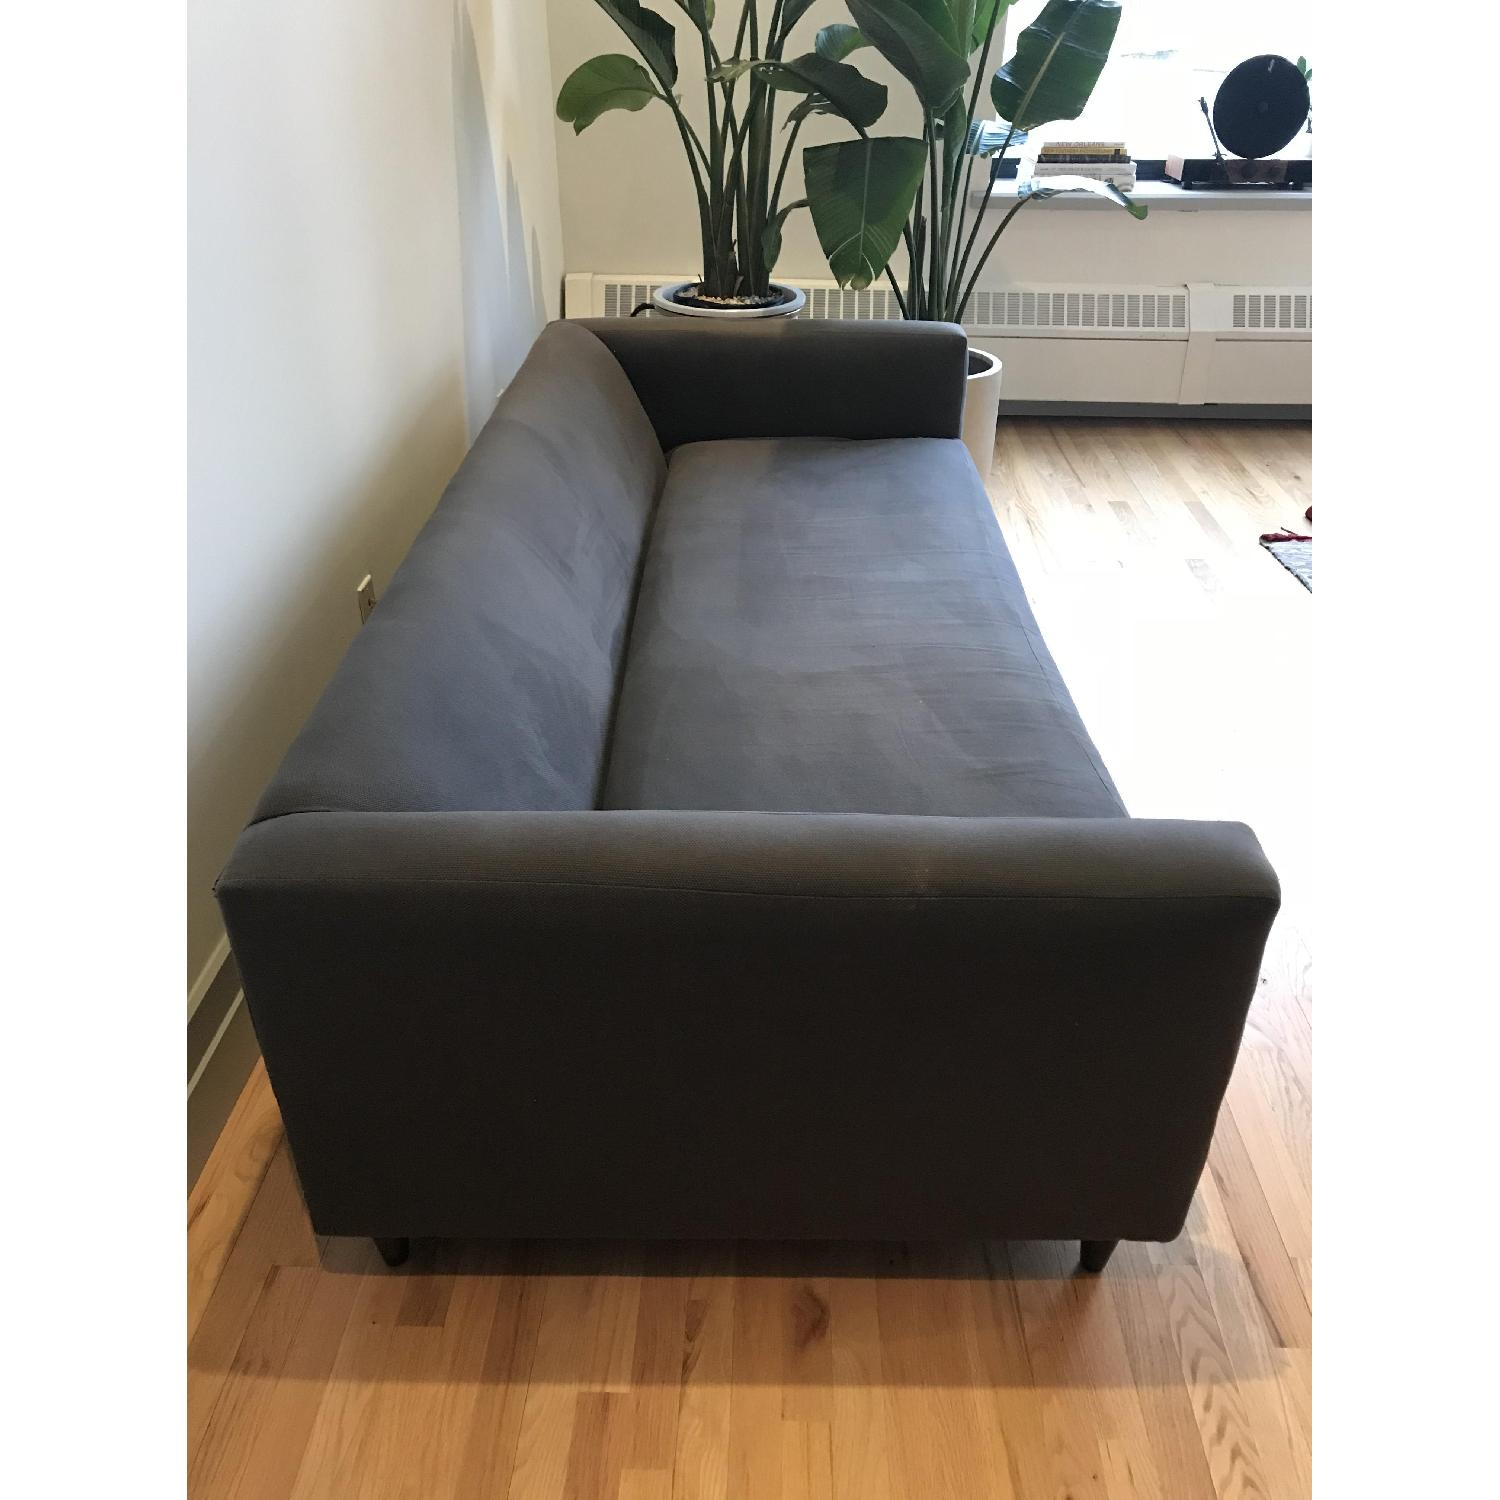 CB2 Movie Sofa in Dark Grey/Blue-2